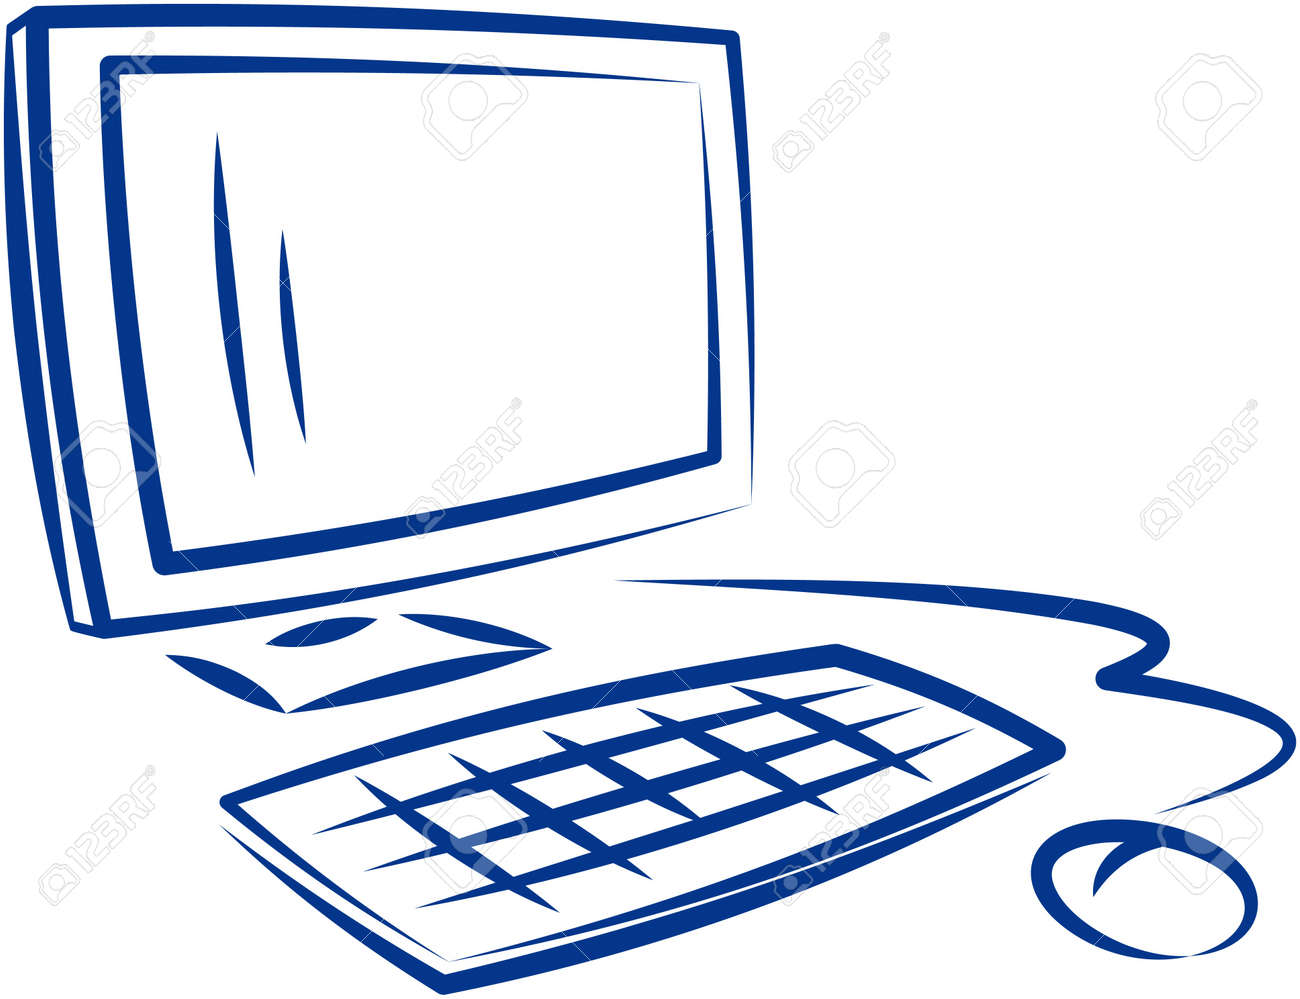 desktop computer vector illustration royalty free cliparts vectors rh 123rf com computer vector icon computer vector free